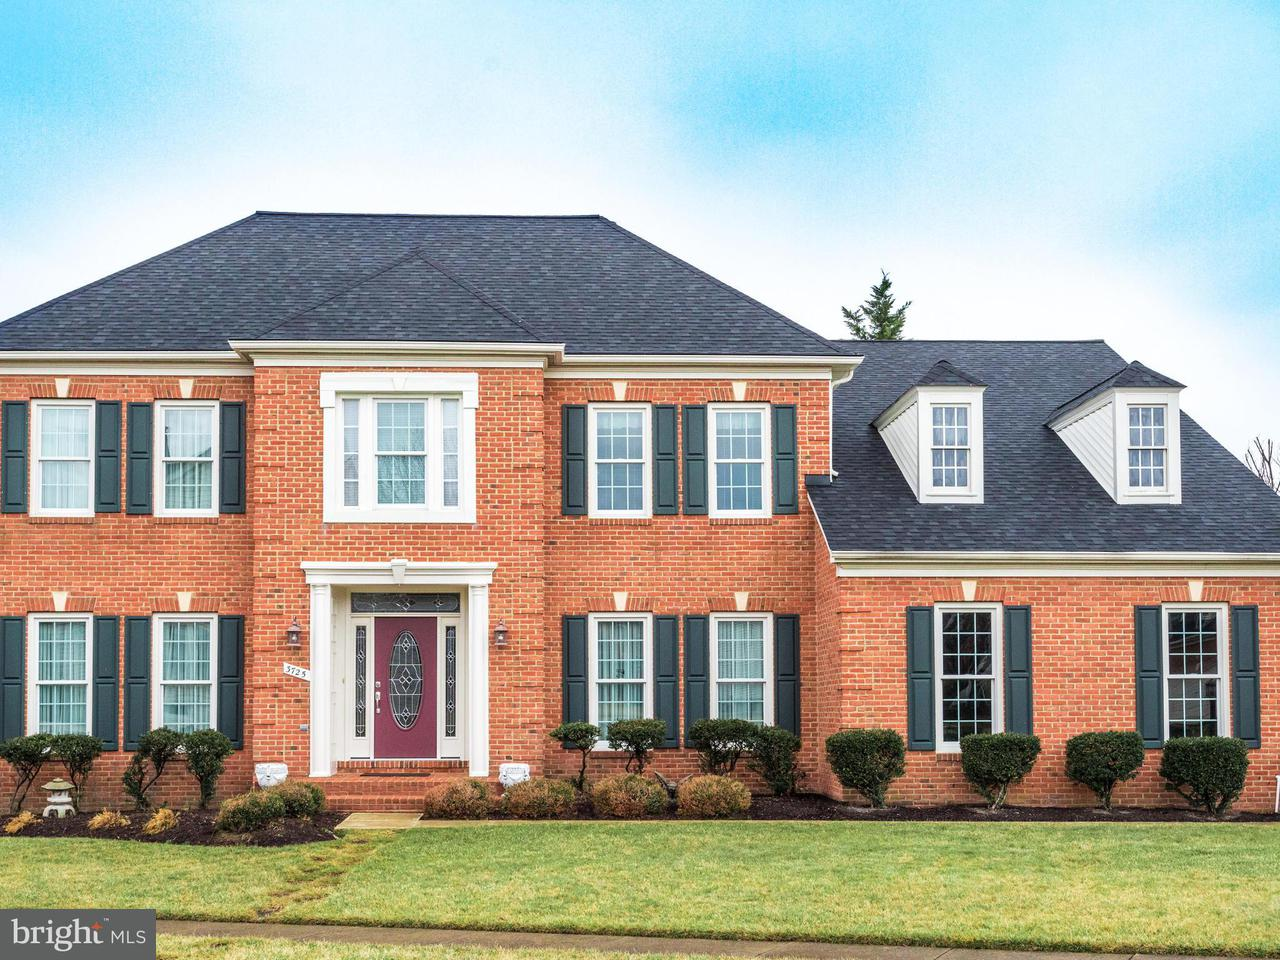 Single Family Home for Sale at 3725 Valley Oaks Drive 3725 Valley Oaks Drive Fairfax, Virginia 22033 United States